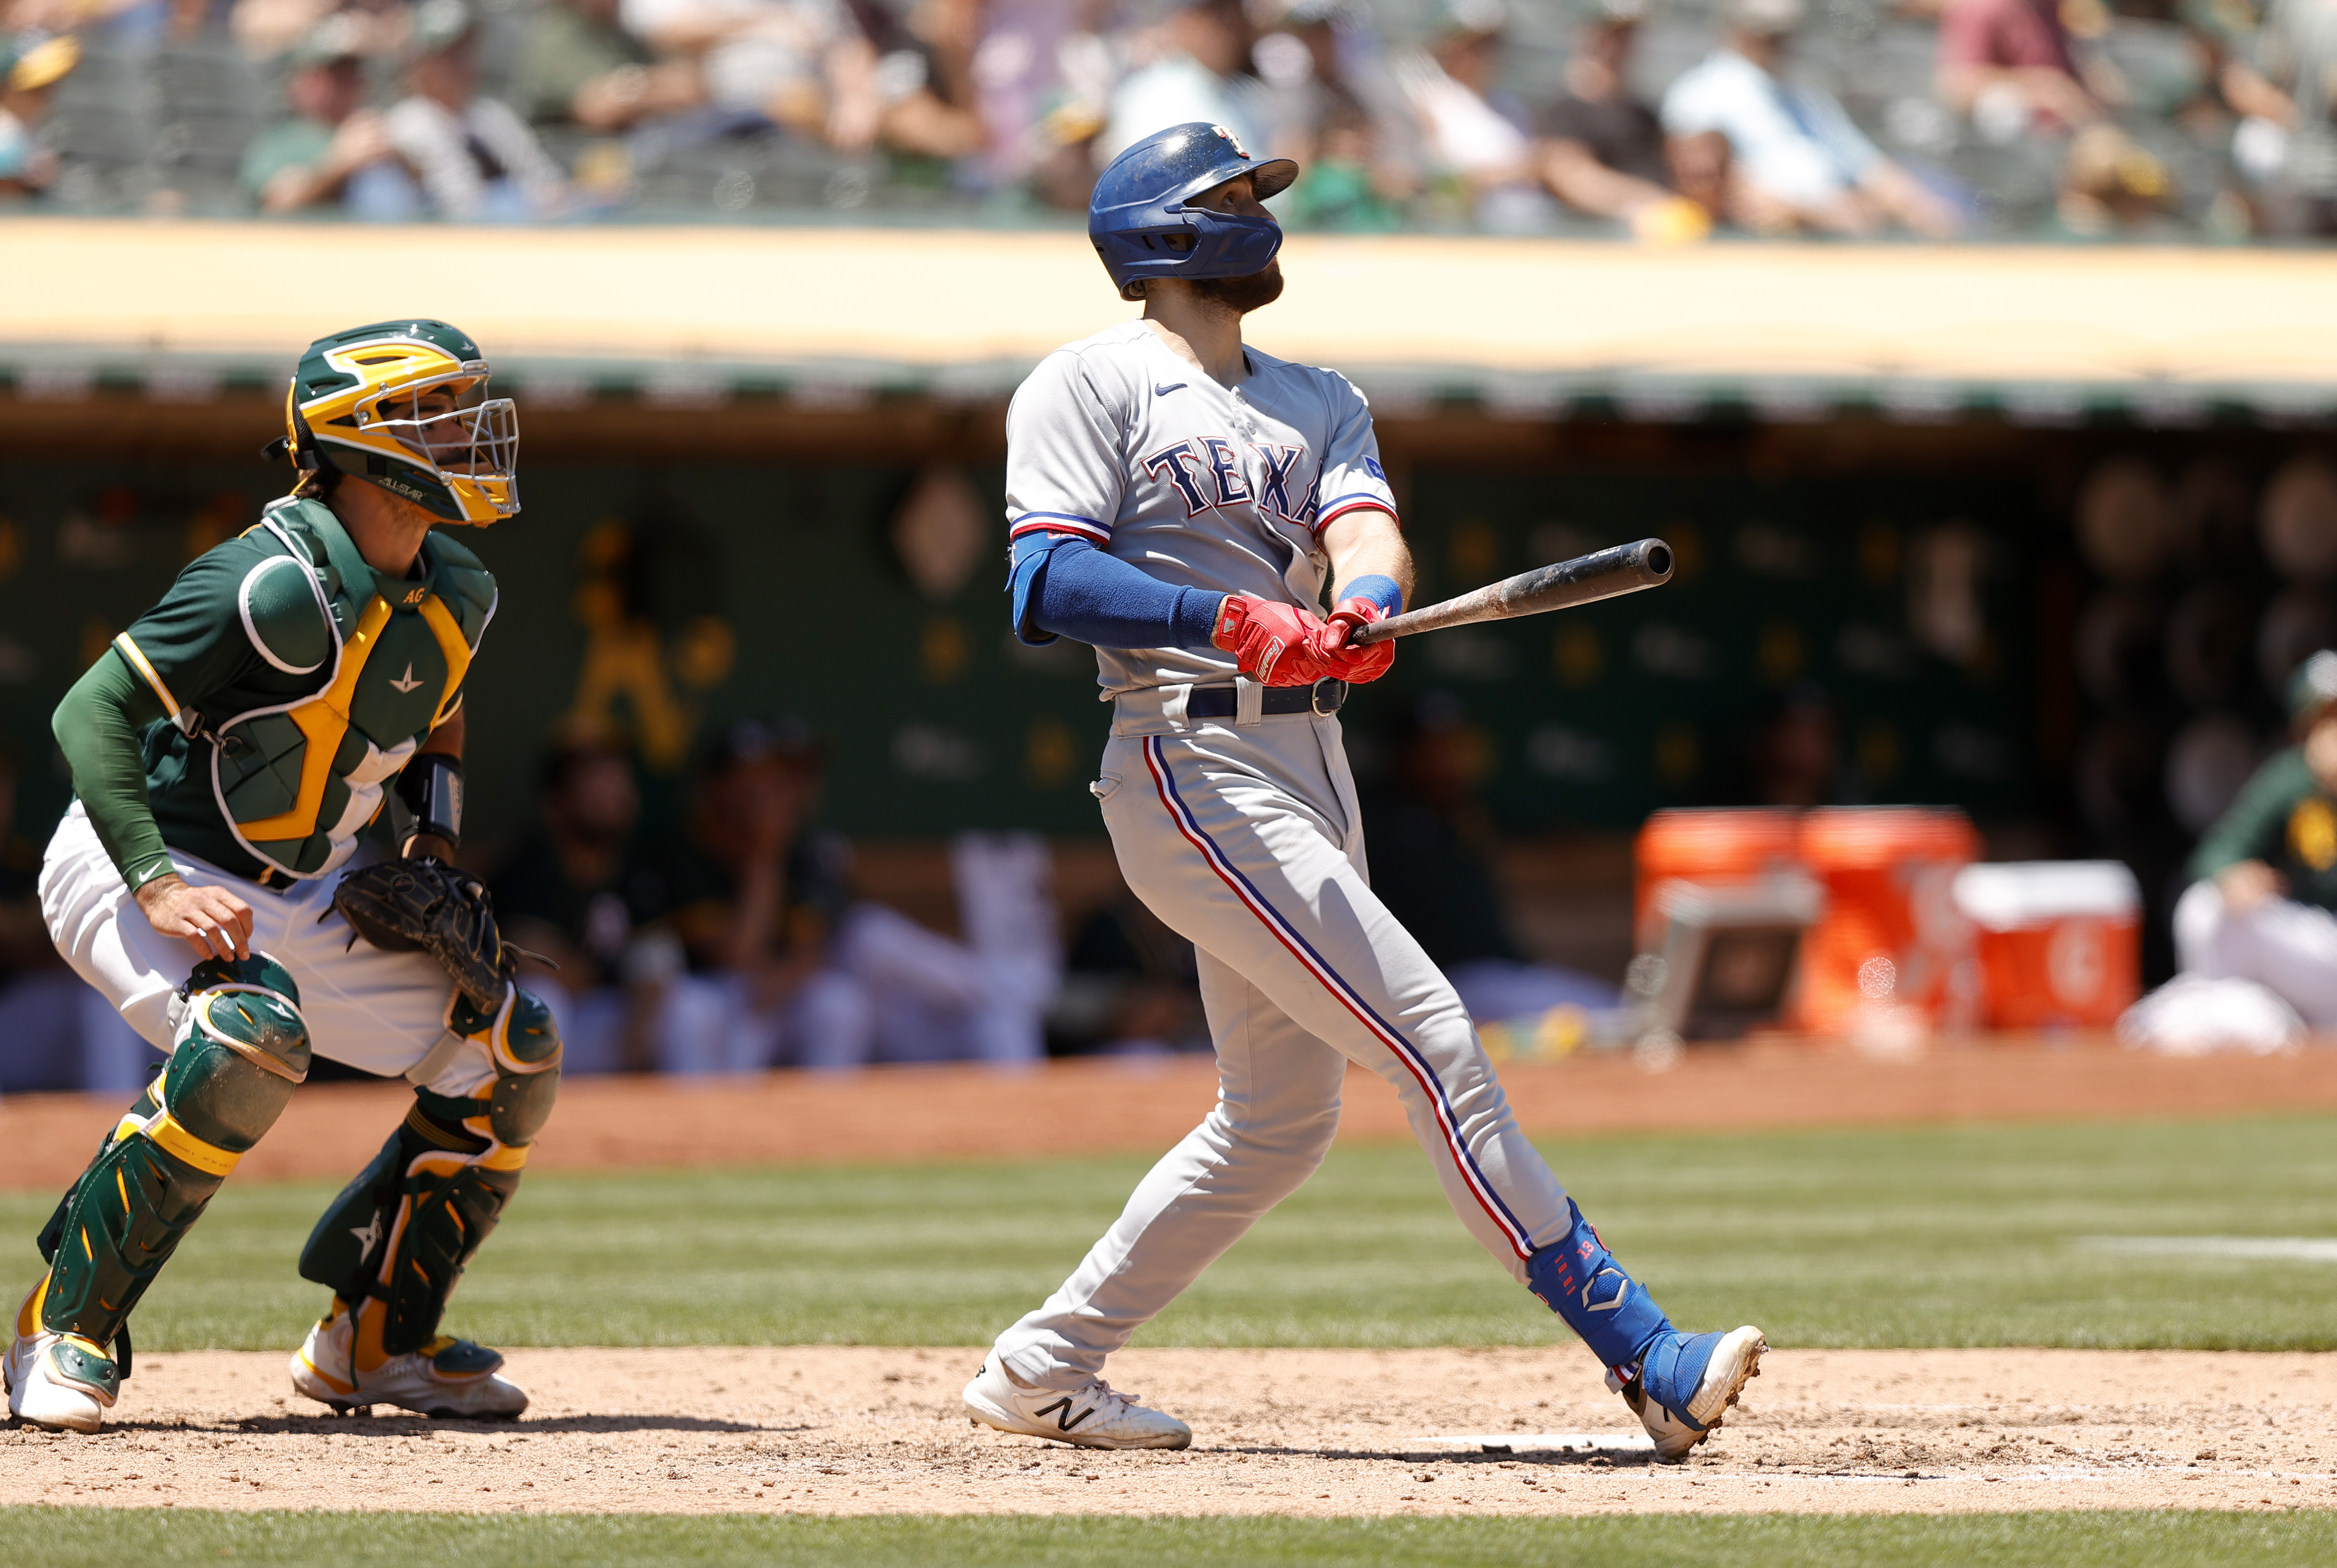 Joey Gallo #13 of the Texas Rangers hits a two-run home run in the fifth inning against the Oakland Athletics at RingCentral Coliseum on July 01, 2021 in Oakland, California.